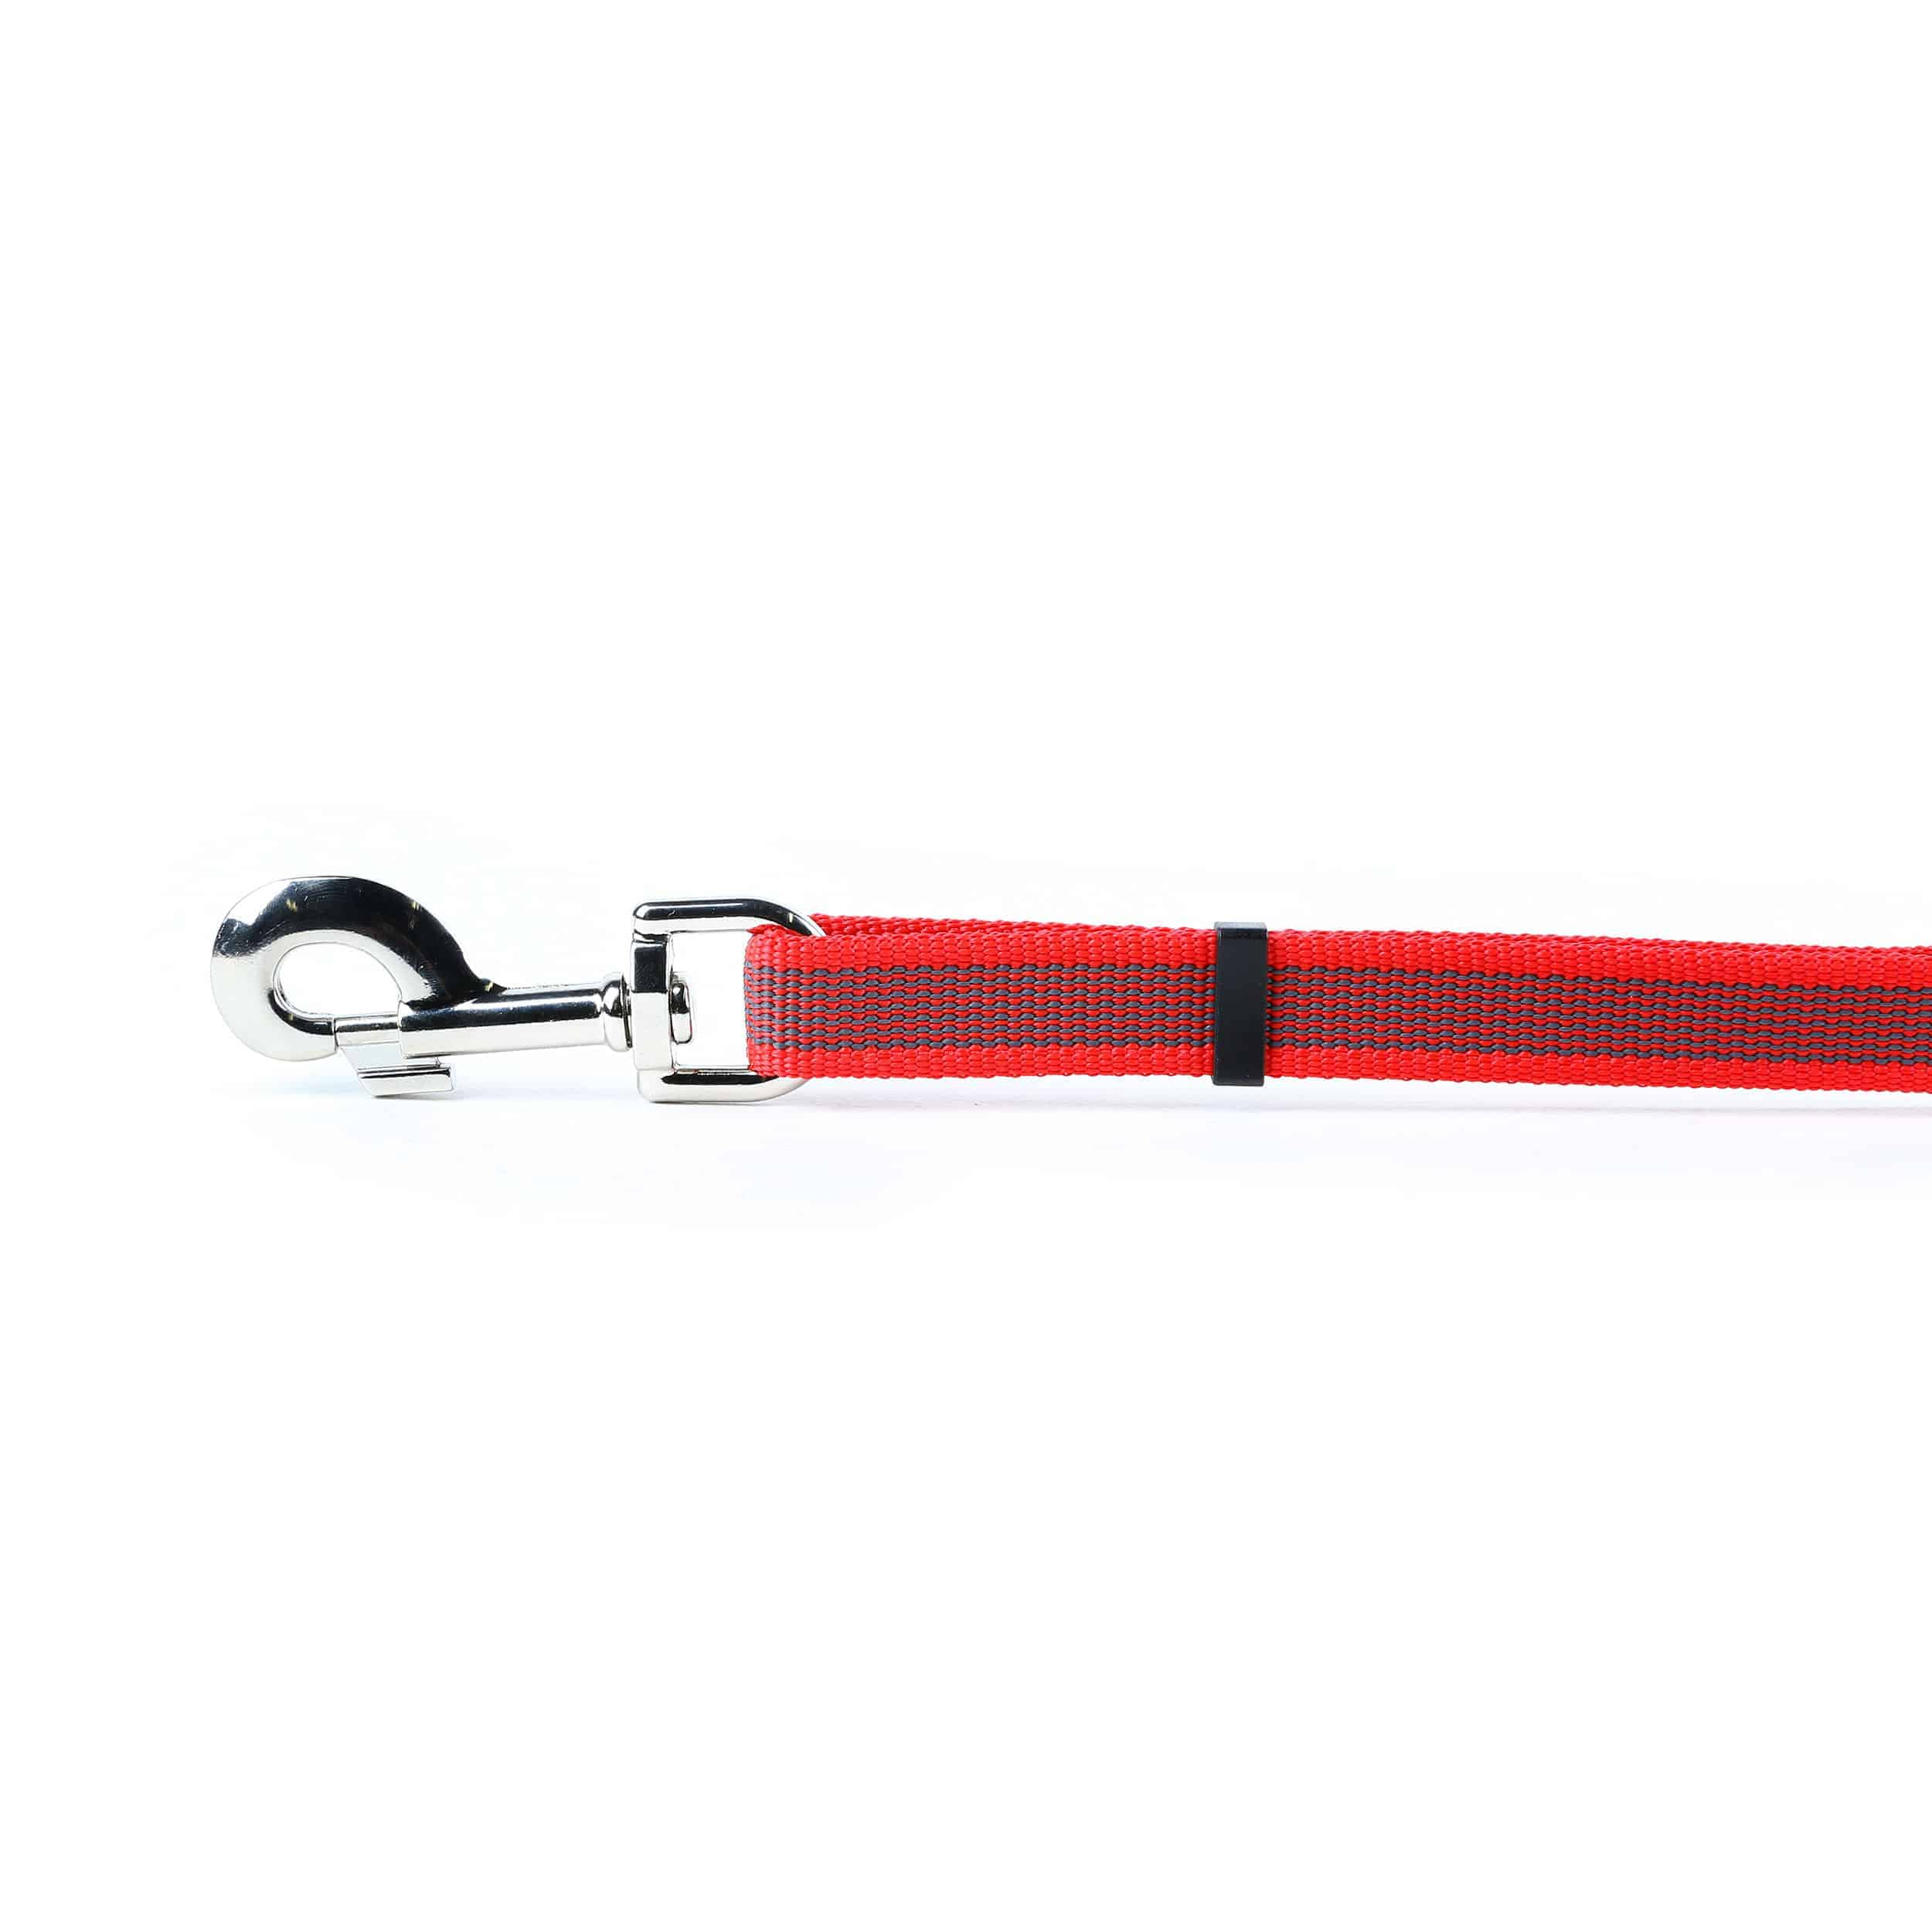 Julius-K9 Dog Puppy Safety Seat Belt Adapter for IDC® Powerharnesses Beltharness